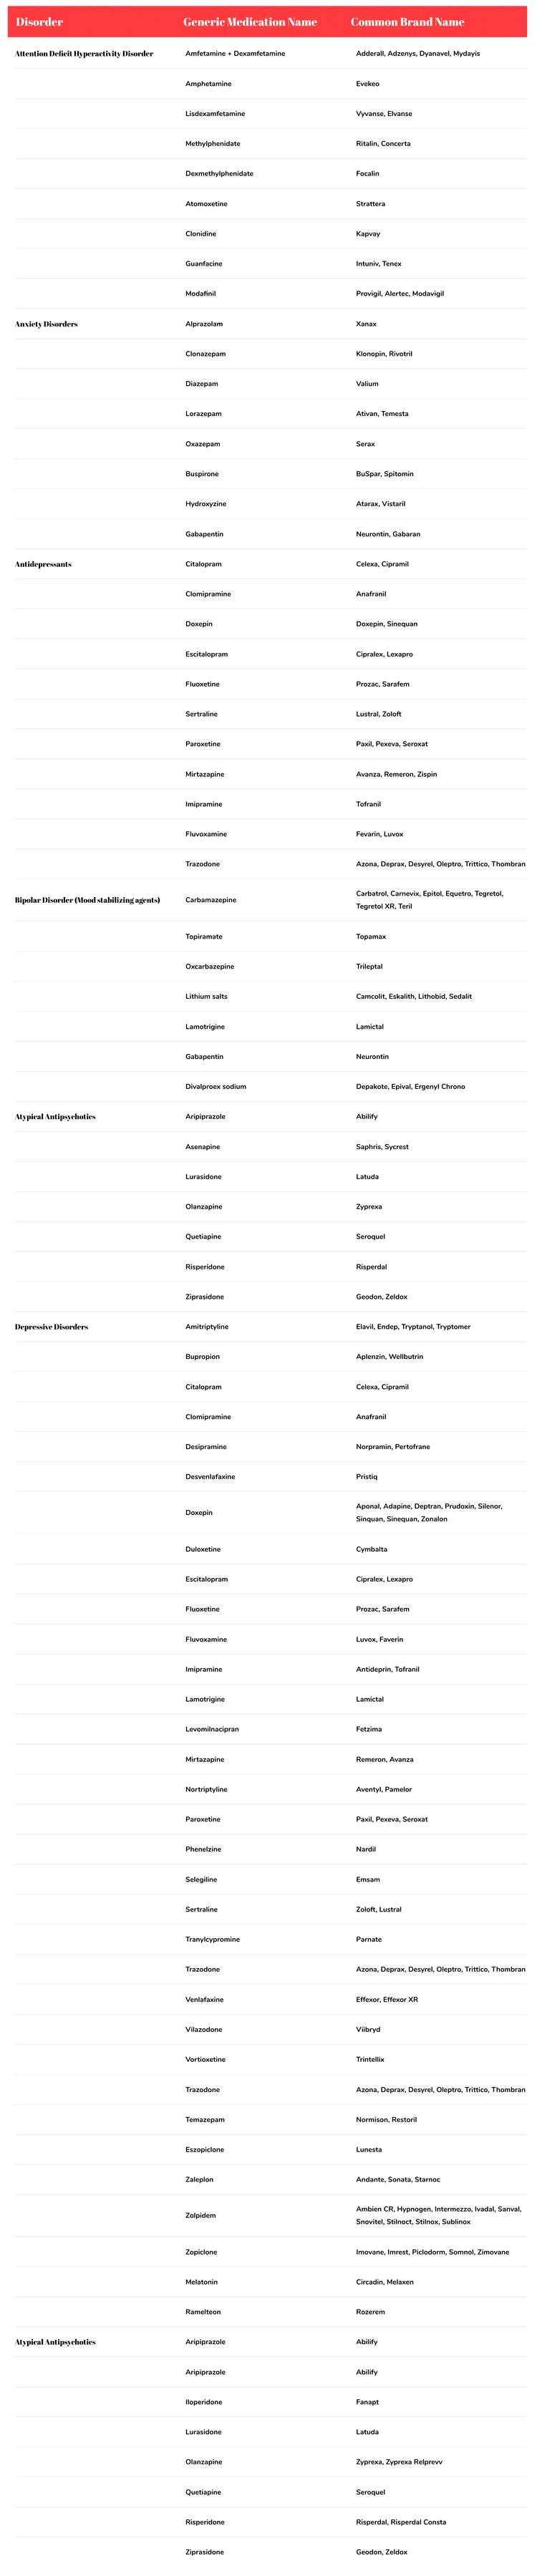 Treatment and medications list